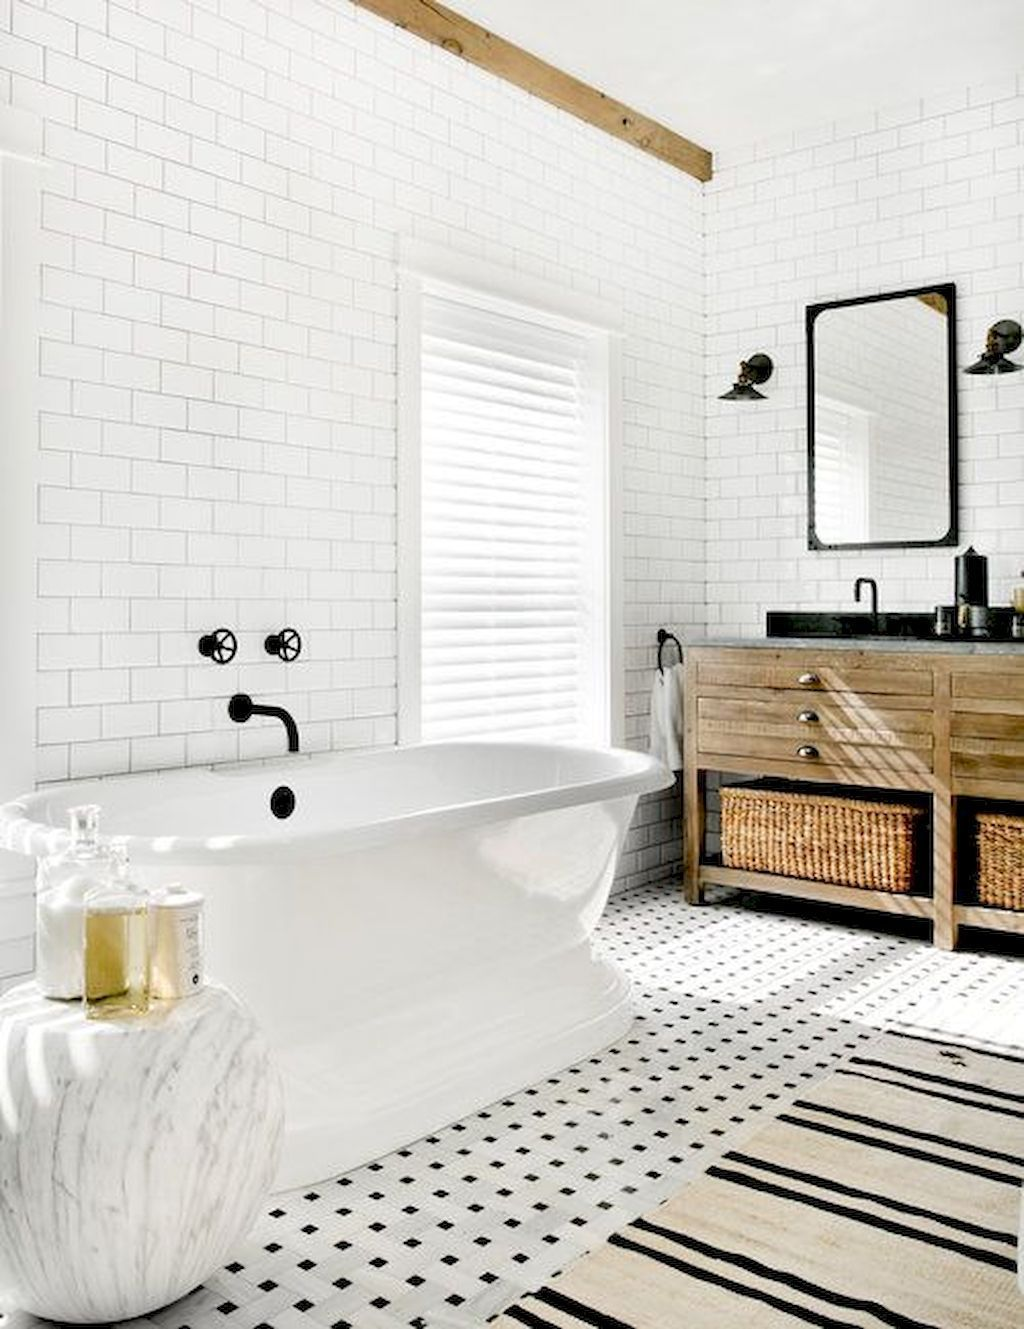 60 Scandinavian Bathroom Design Ideas To Inspire You | Scandinavian ...